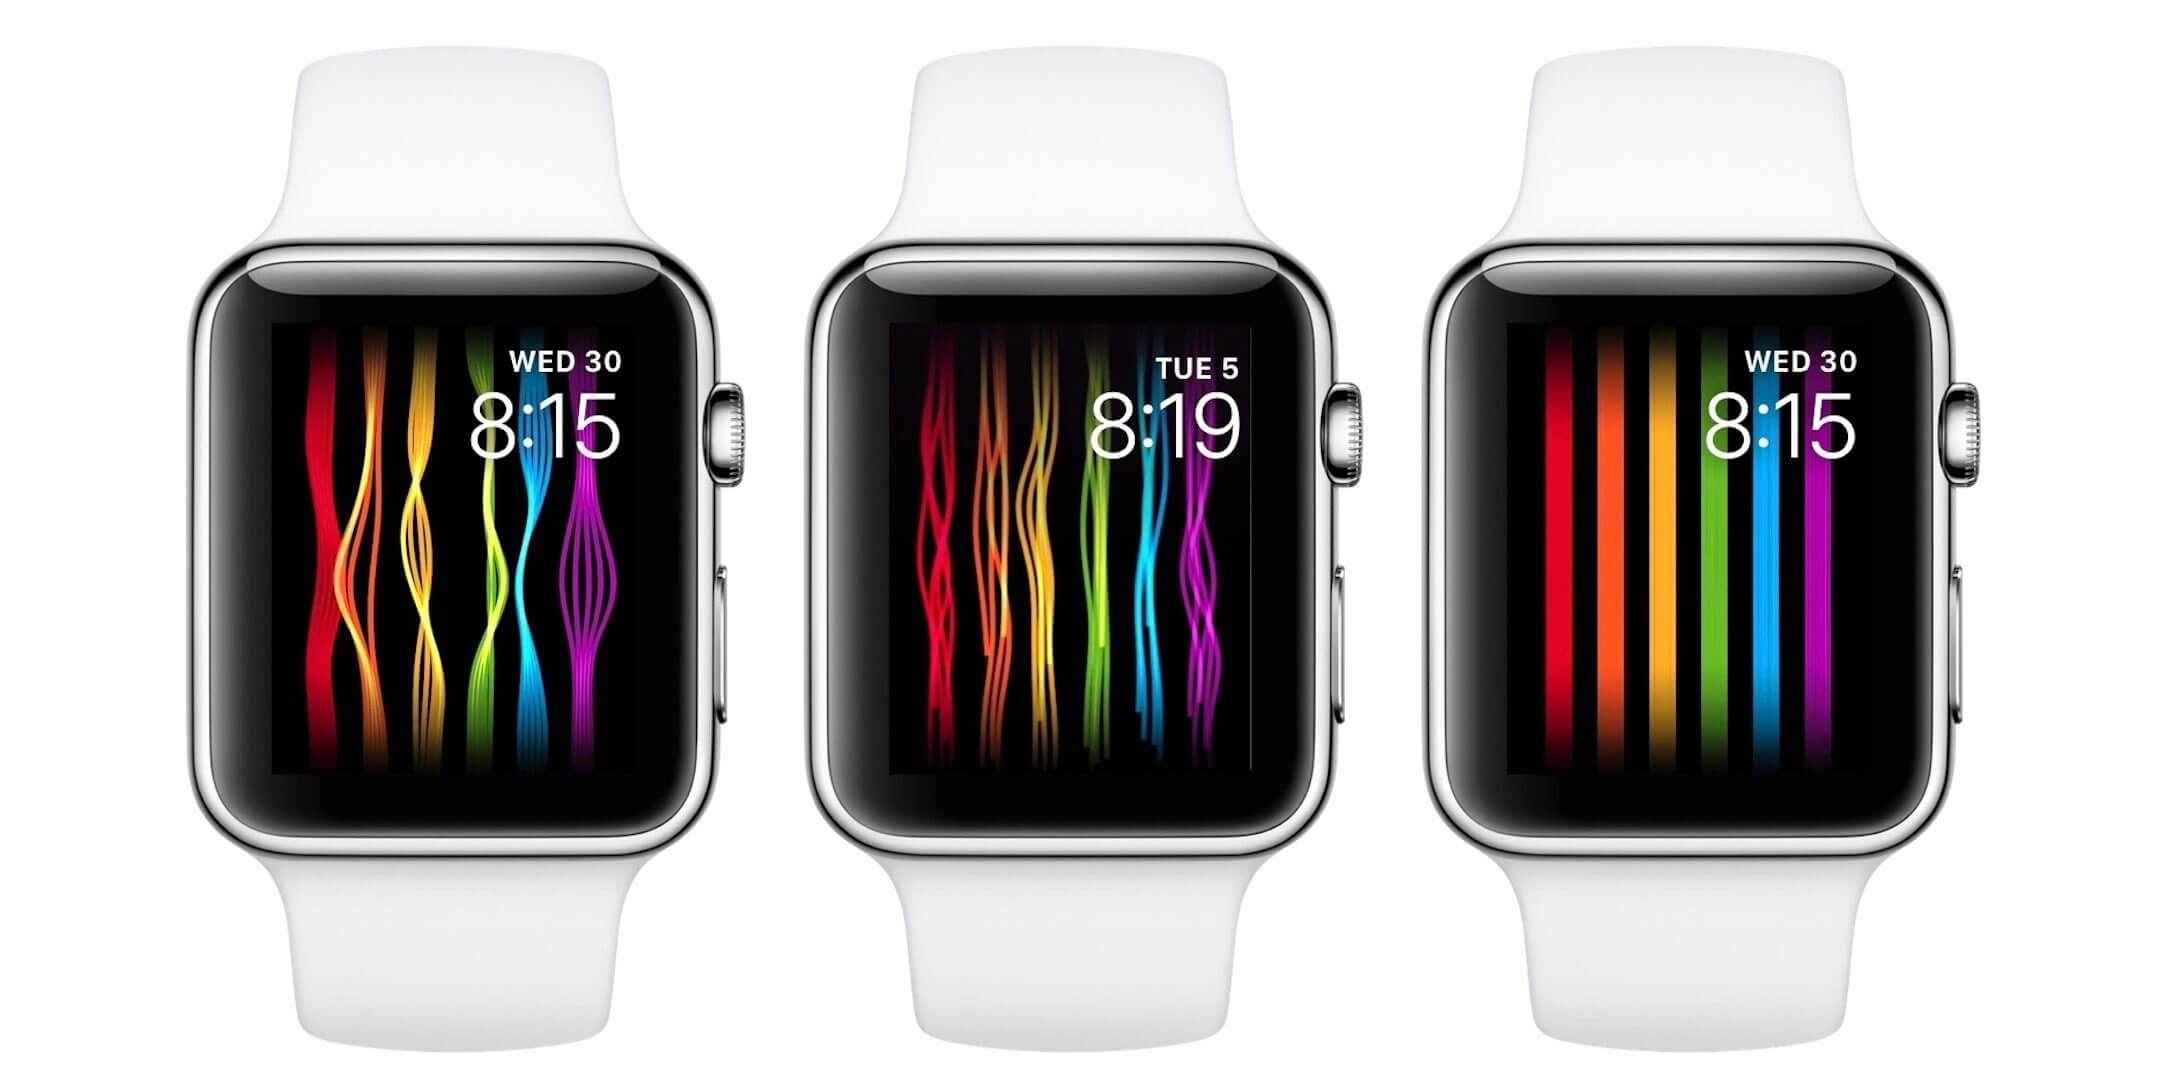 Apple blocks the Gay Pride watch face in Russia